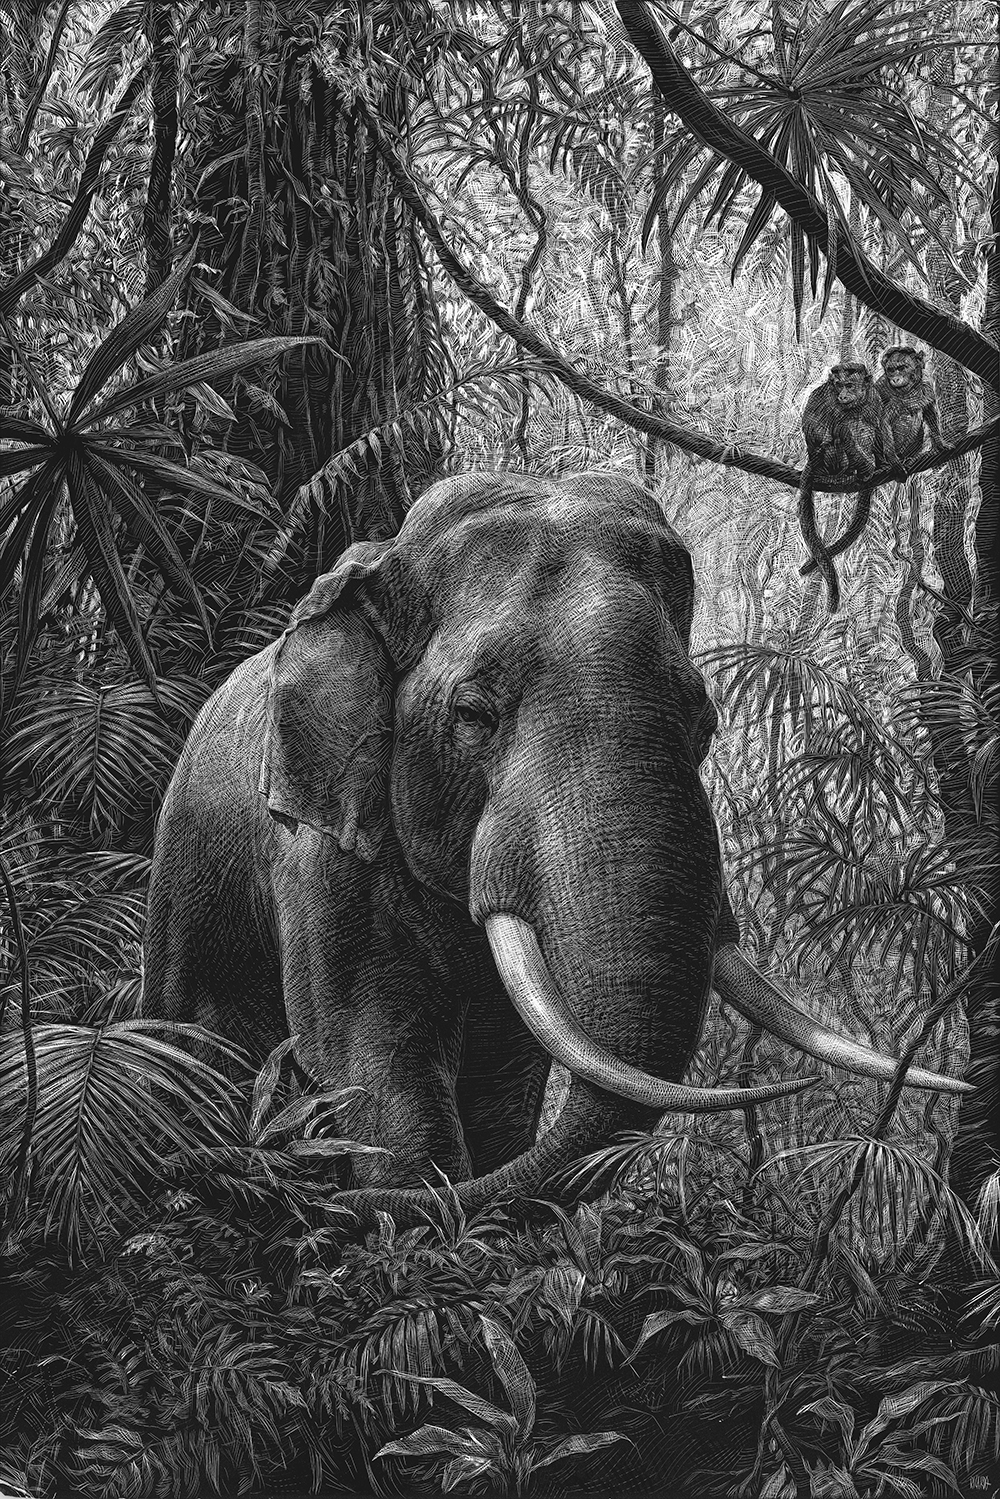 10-Elephant-and-Monkeys-Ricardo-Martinez-Wild-Animals-inside-Scratchboard-Drawings-www-designstack-co